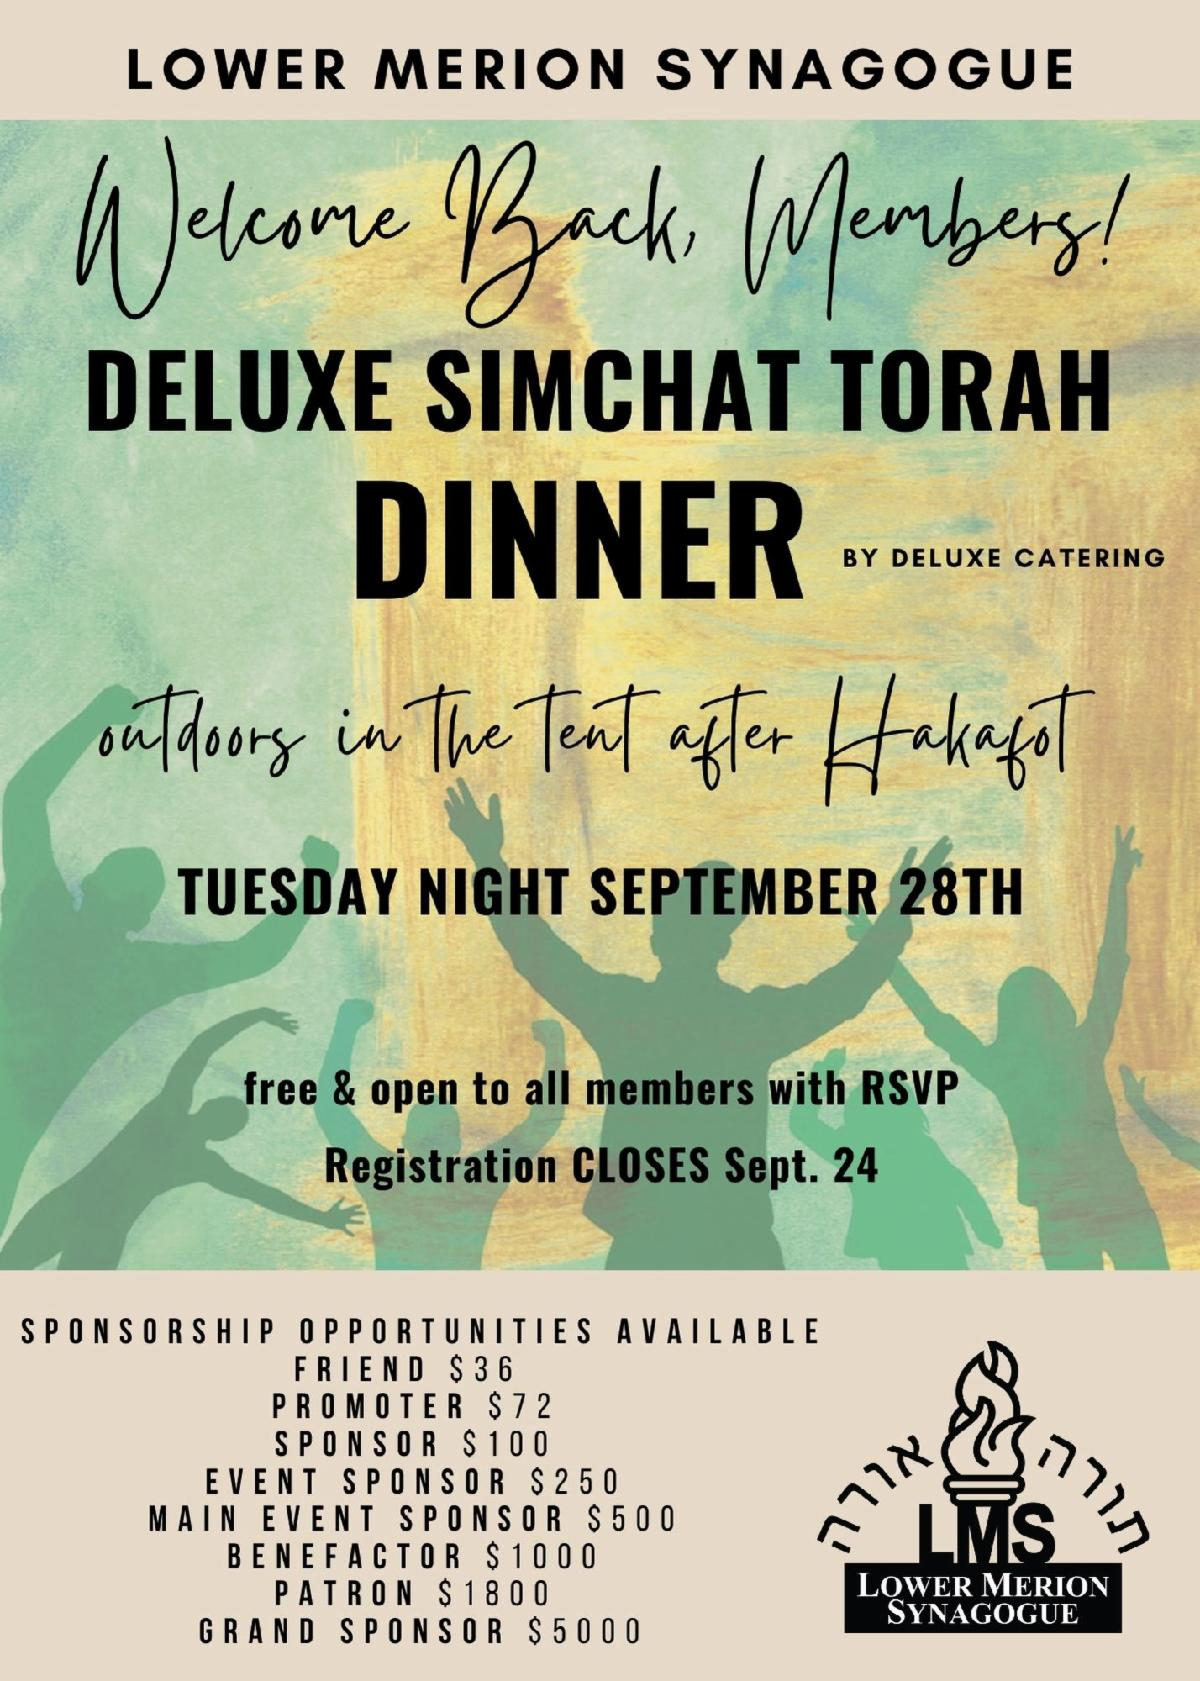 """</a>                                                                                                                                                                                      <a href=""""https://www.lowermerionsynagogue.org/form/Welcome%20Back%20Simchat%20Torah%20Dinner%205782"""" class=""""slider_link""""                             target="""""""">                             To RSVP Click Here                            </a>"""